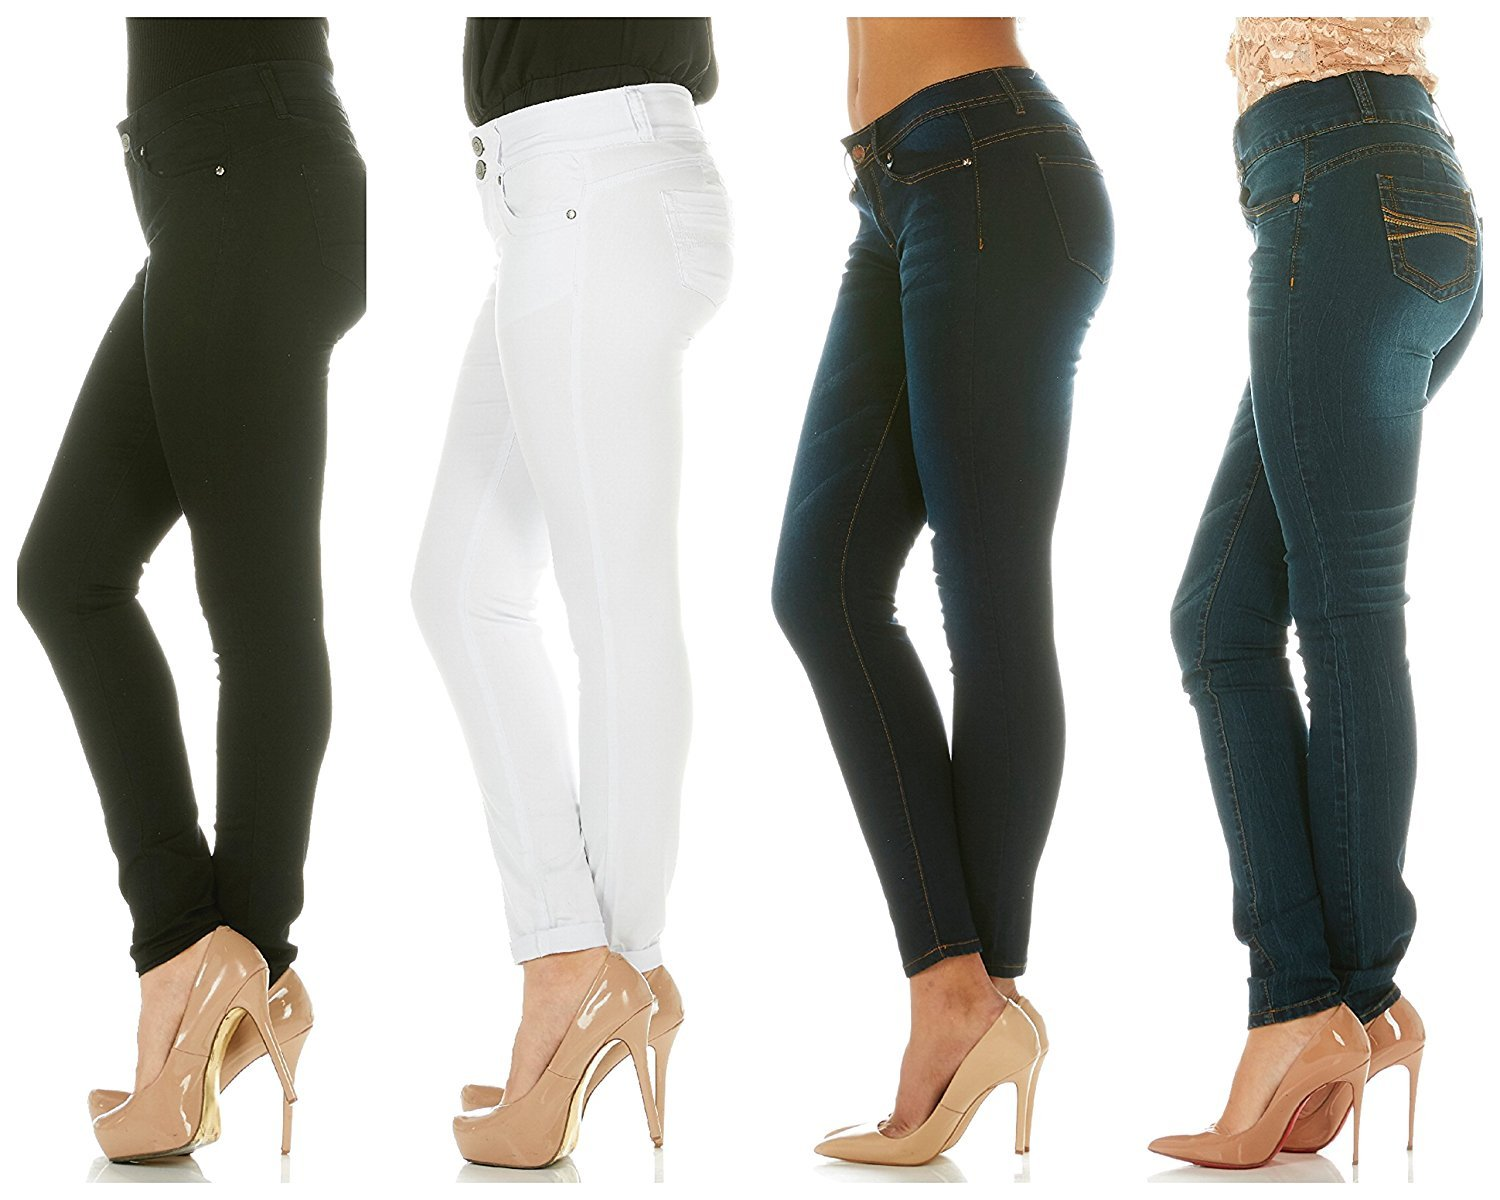 a0f3ff01be80 Cover Girl Jeans Women Juniors Mid Rise Slim Fit Stretchy Skinny ...